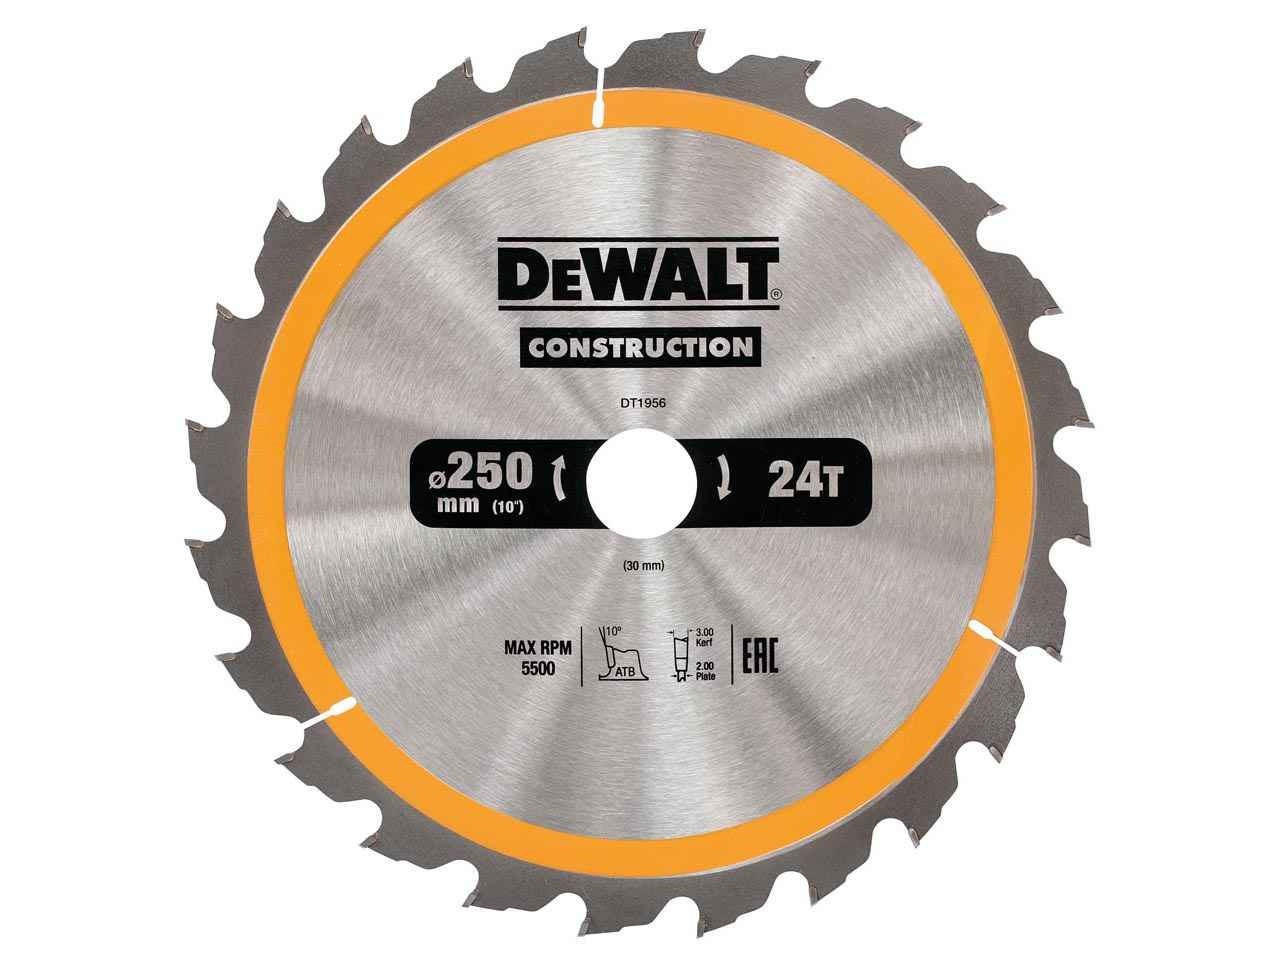 Dewalt dt1956qz construction circular saw blade 250x30mm 24t keyboard keysfo Images